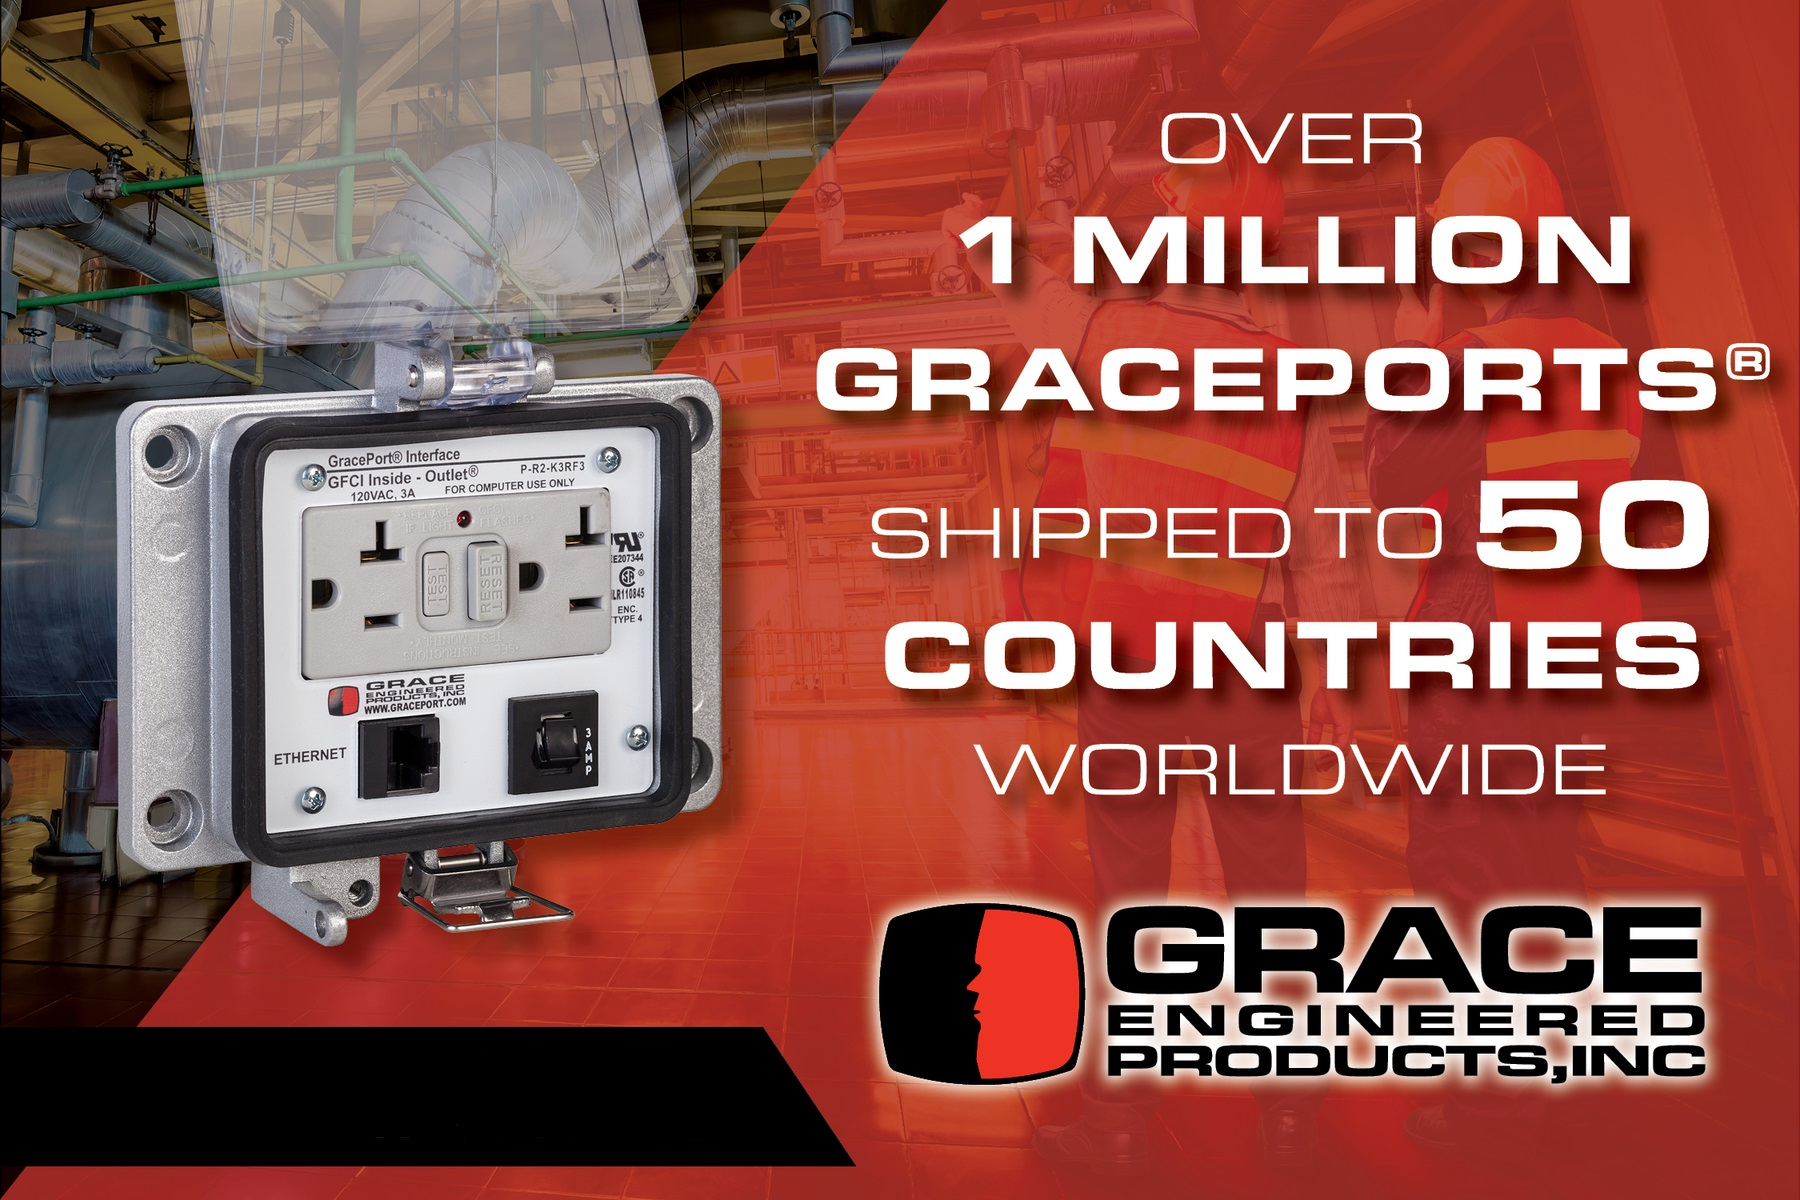 preview-lightbox-GracePort Stat Social Ad-1